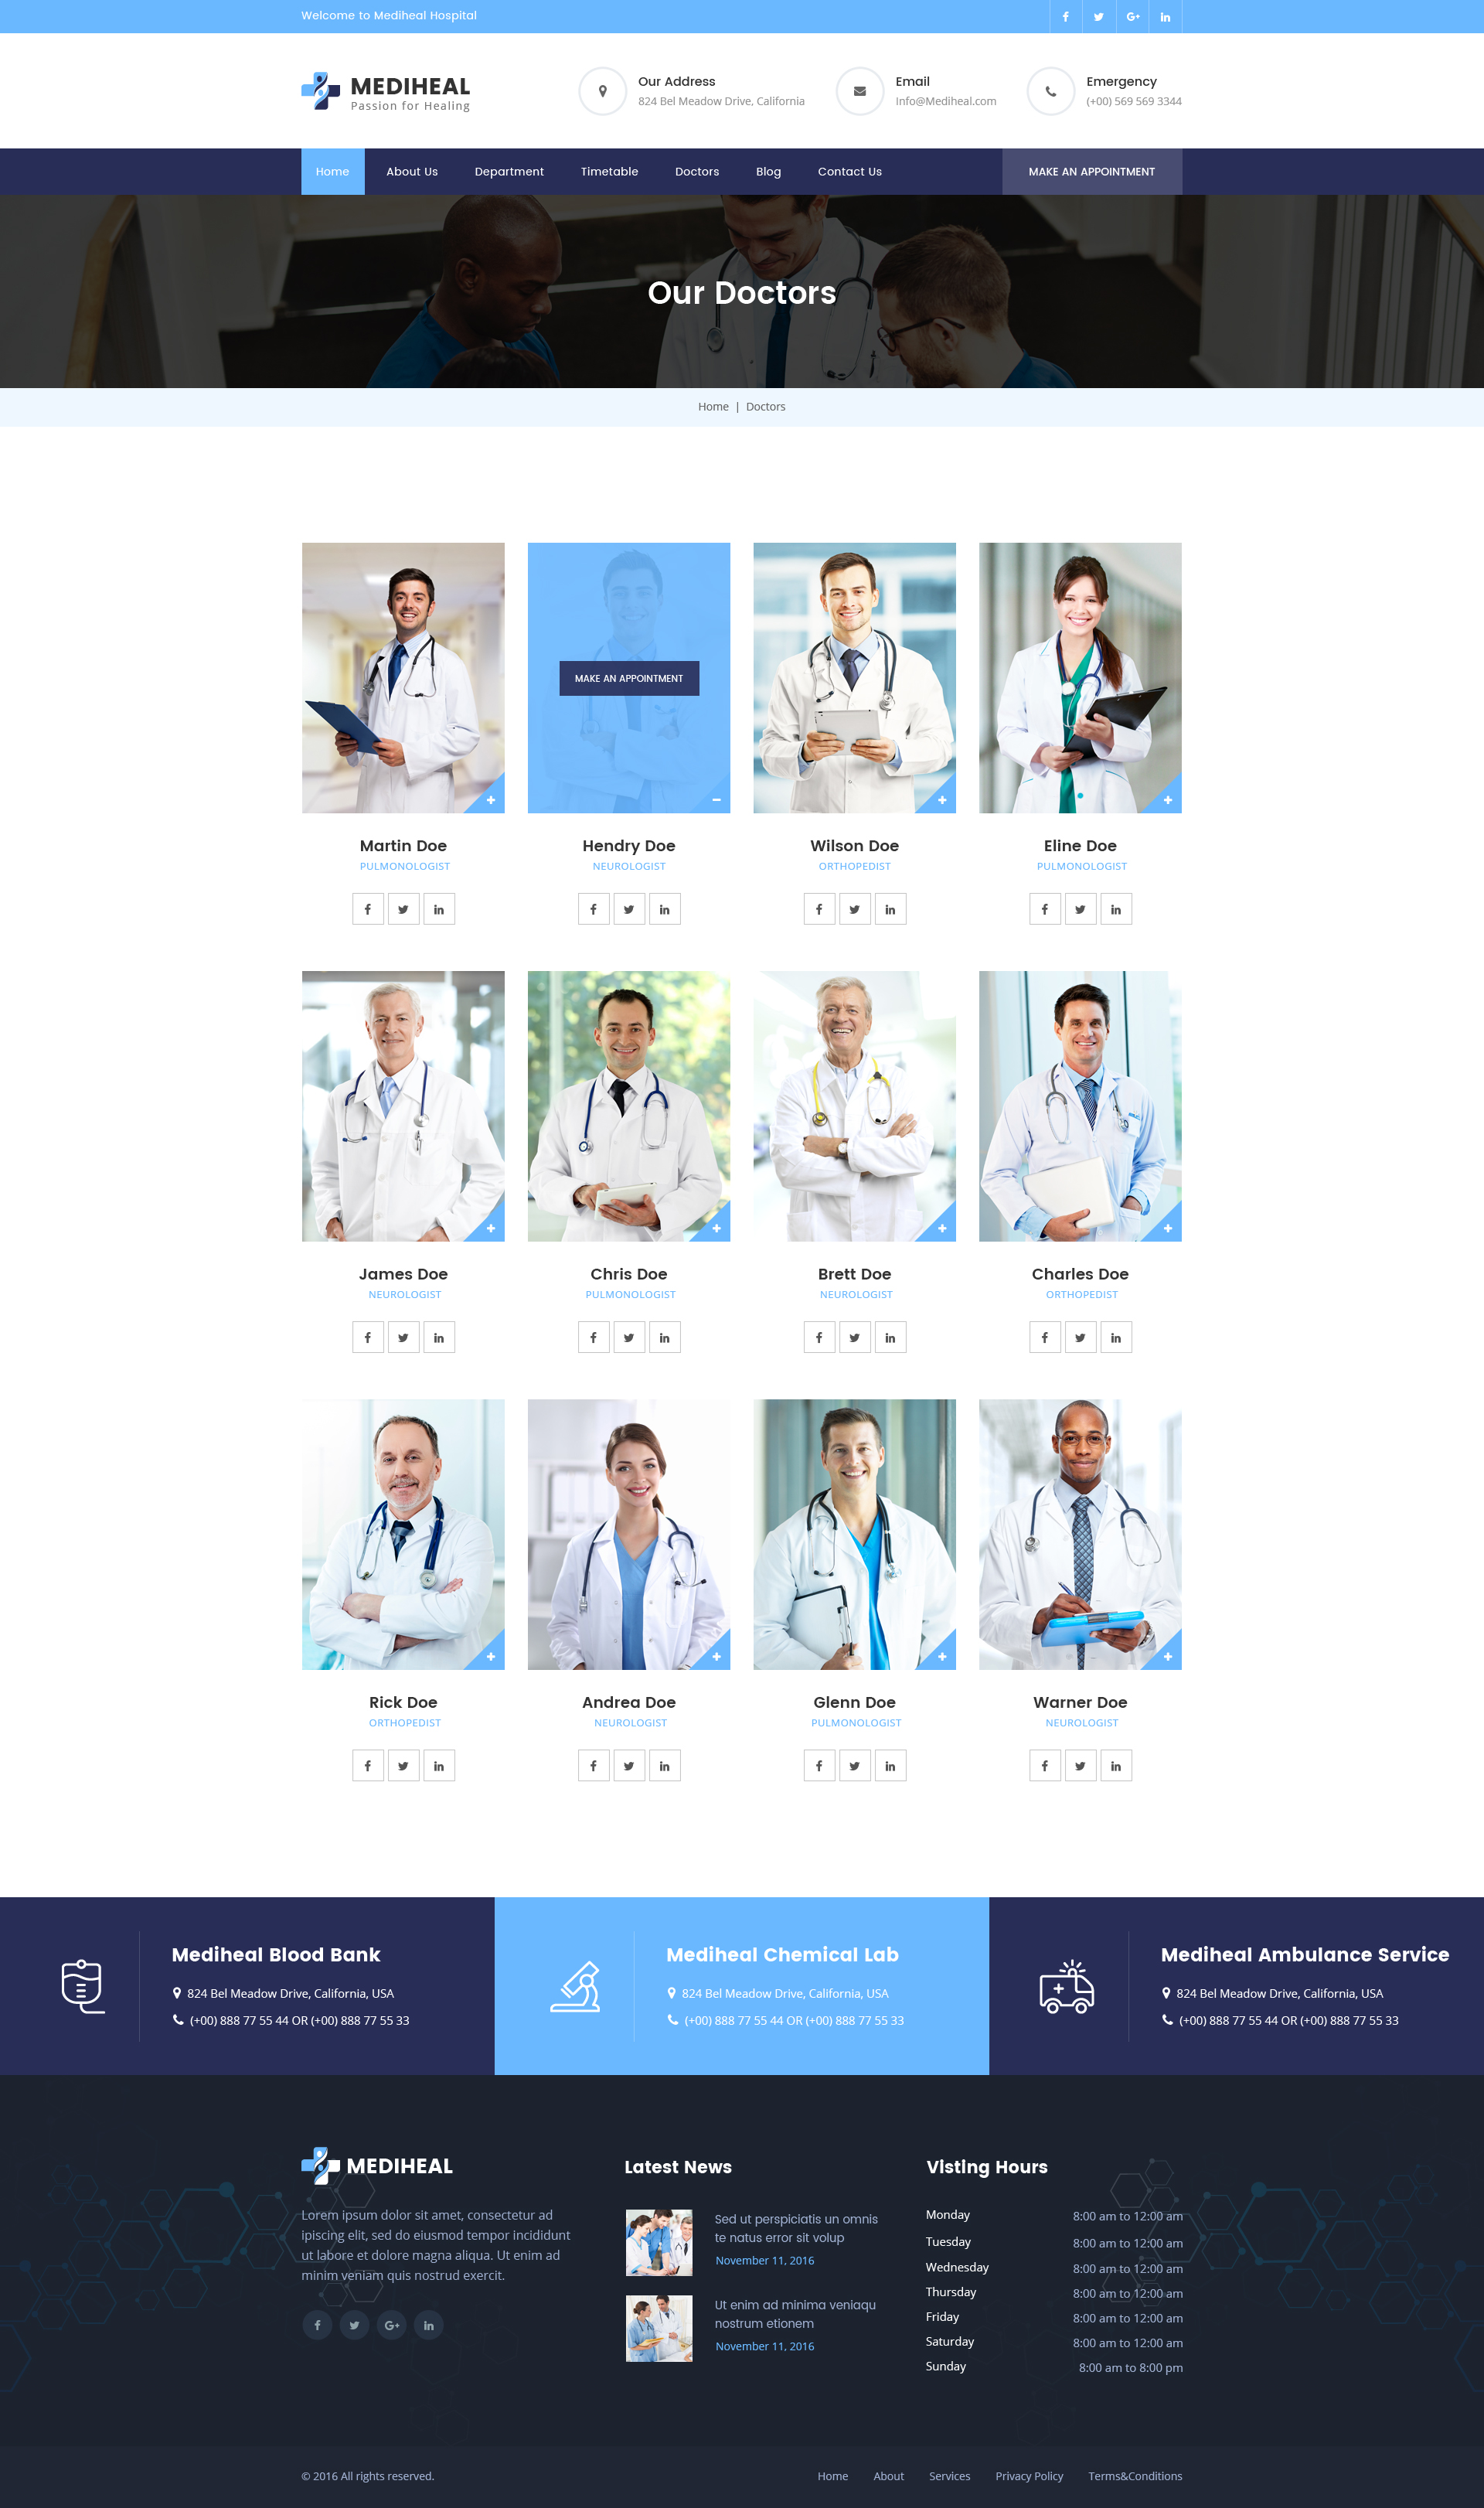 hospital menu template - mediheal medical hospital psd template by techmerea